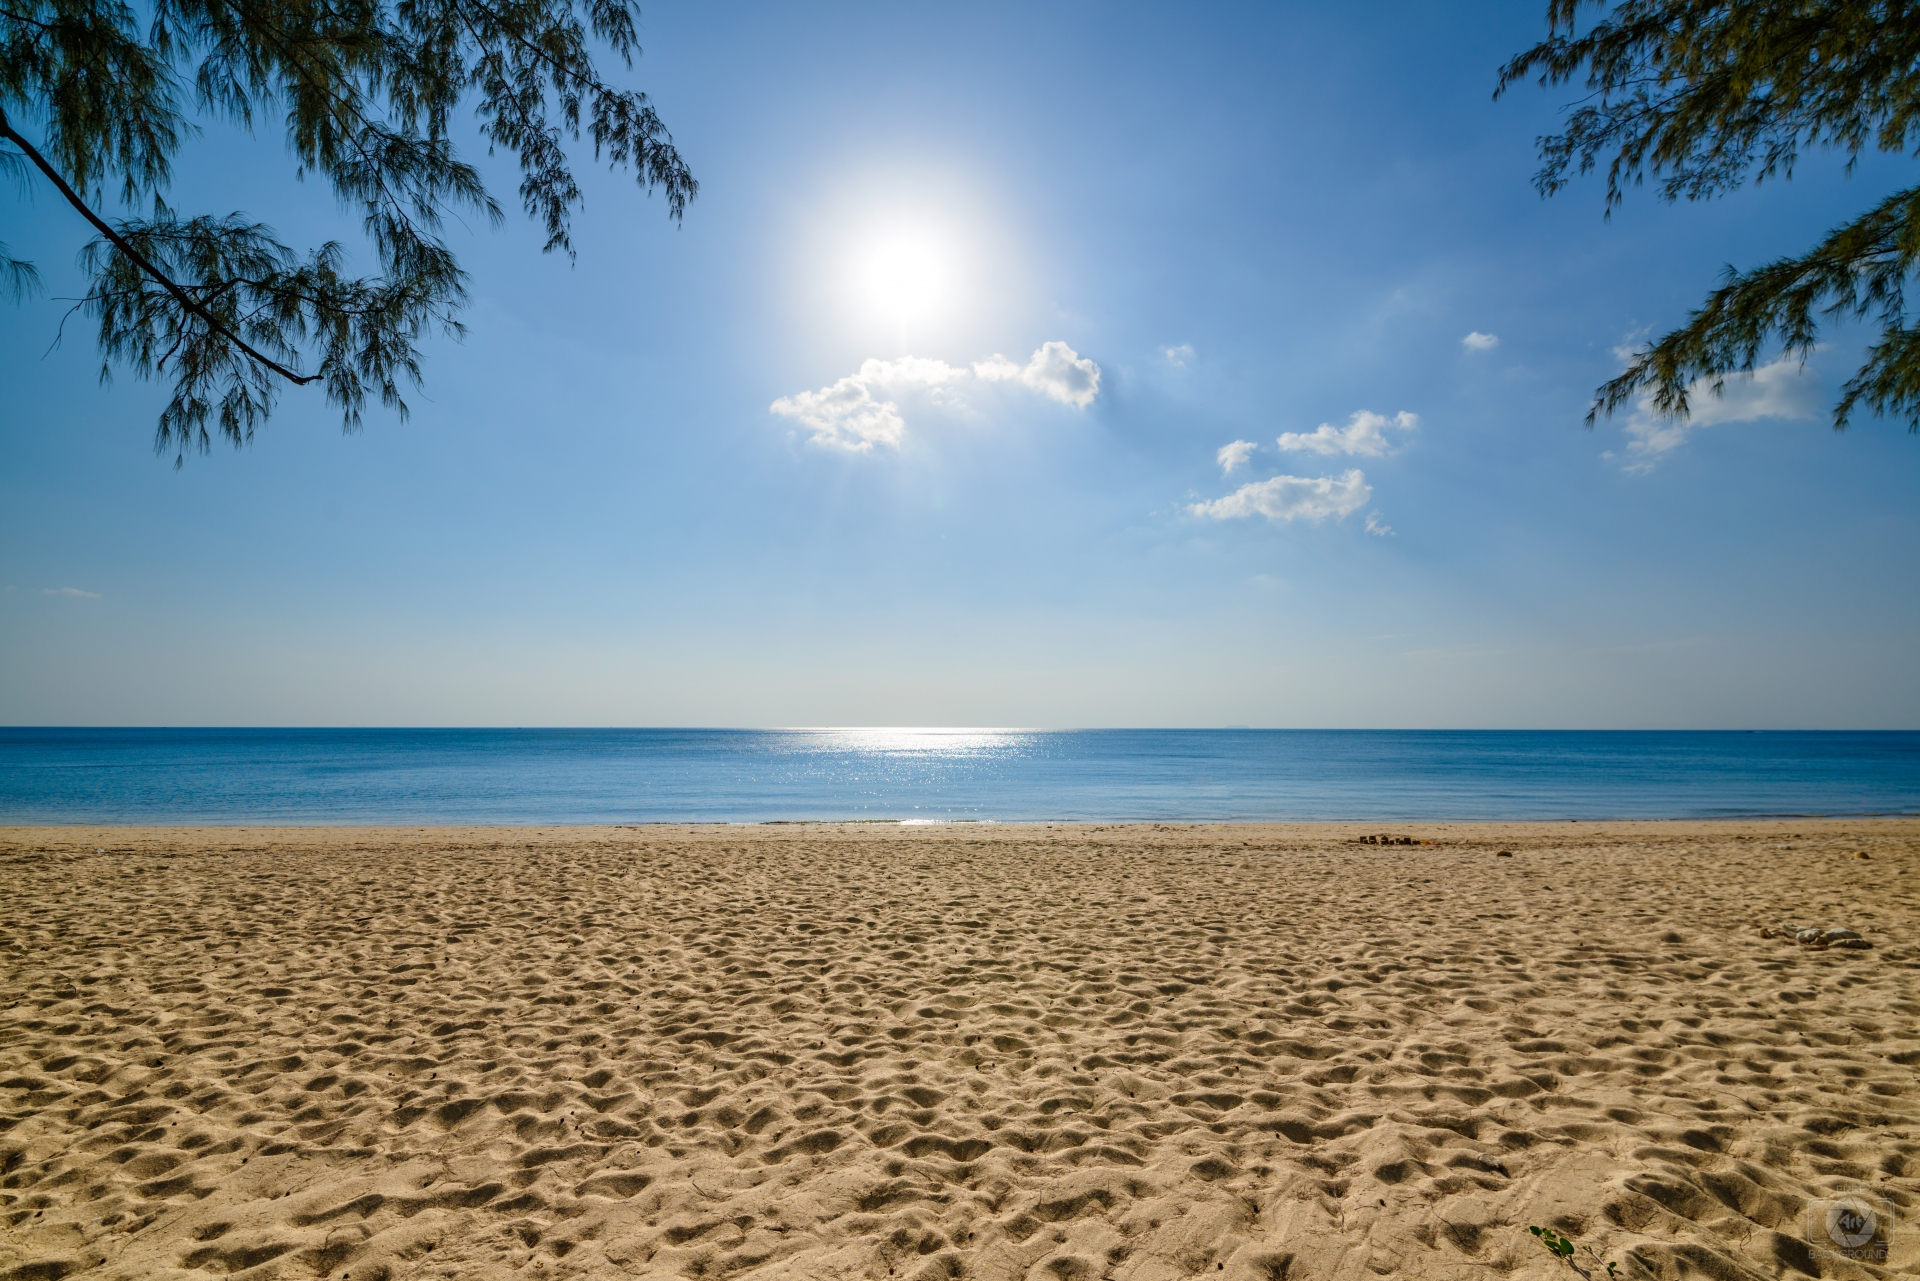 Beach Background   High quality Backgrounds 1920x1281